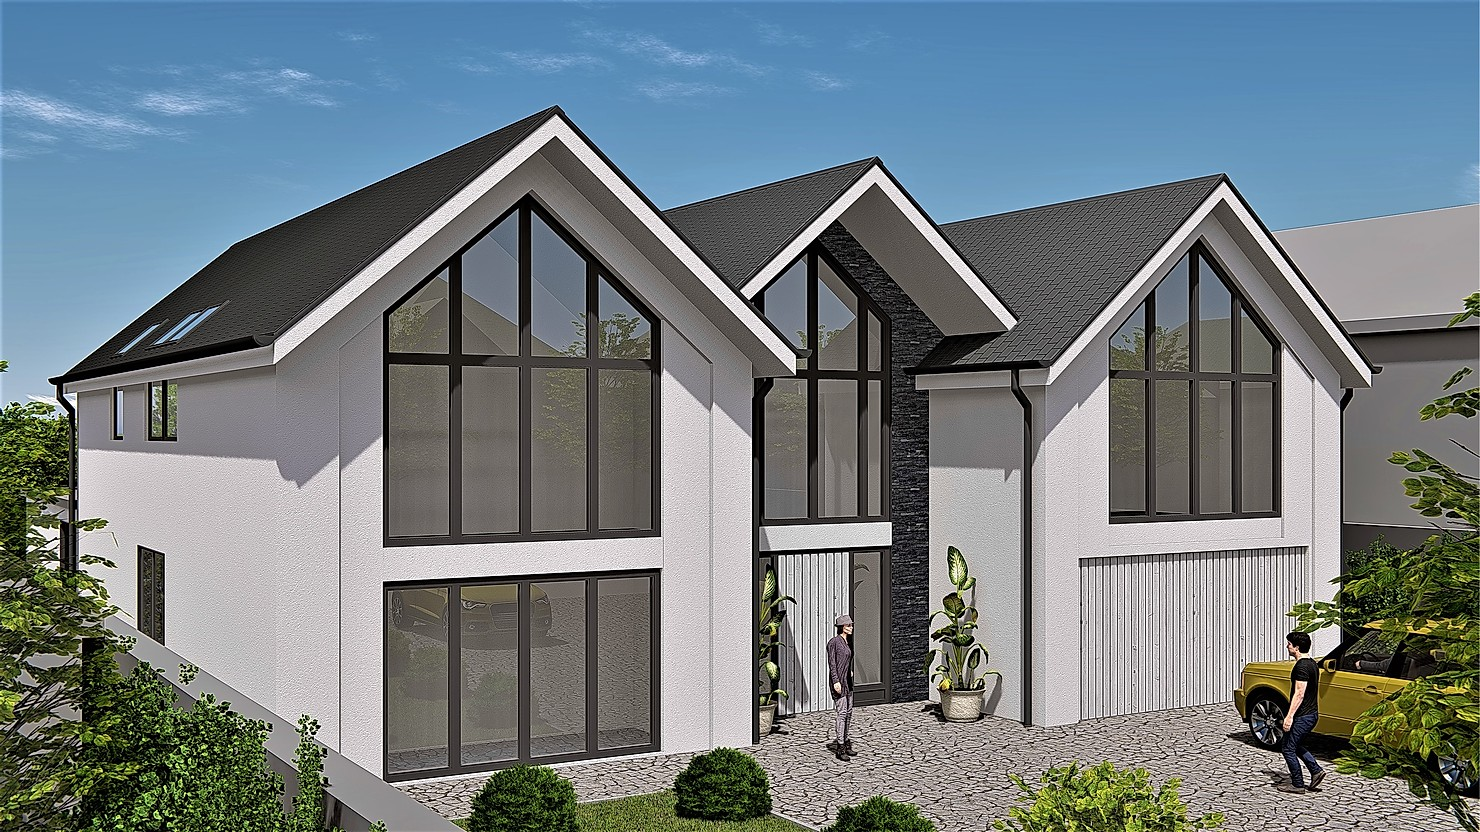 new build dwelling, Vaulted roof, glass frontage